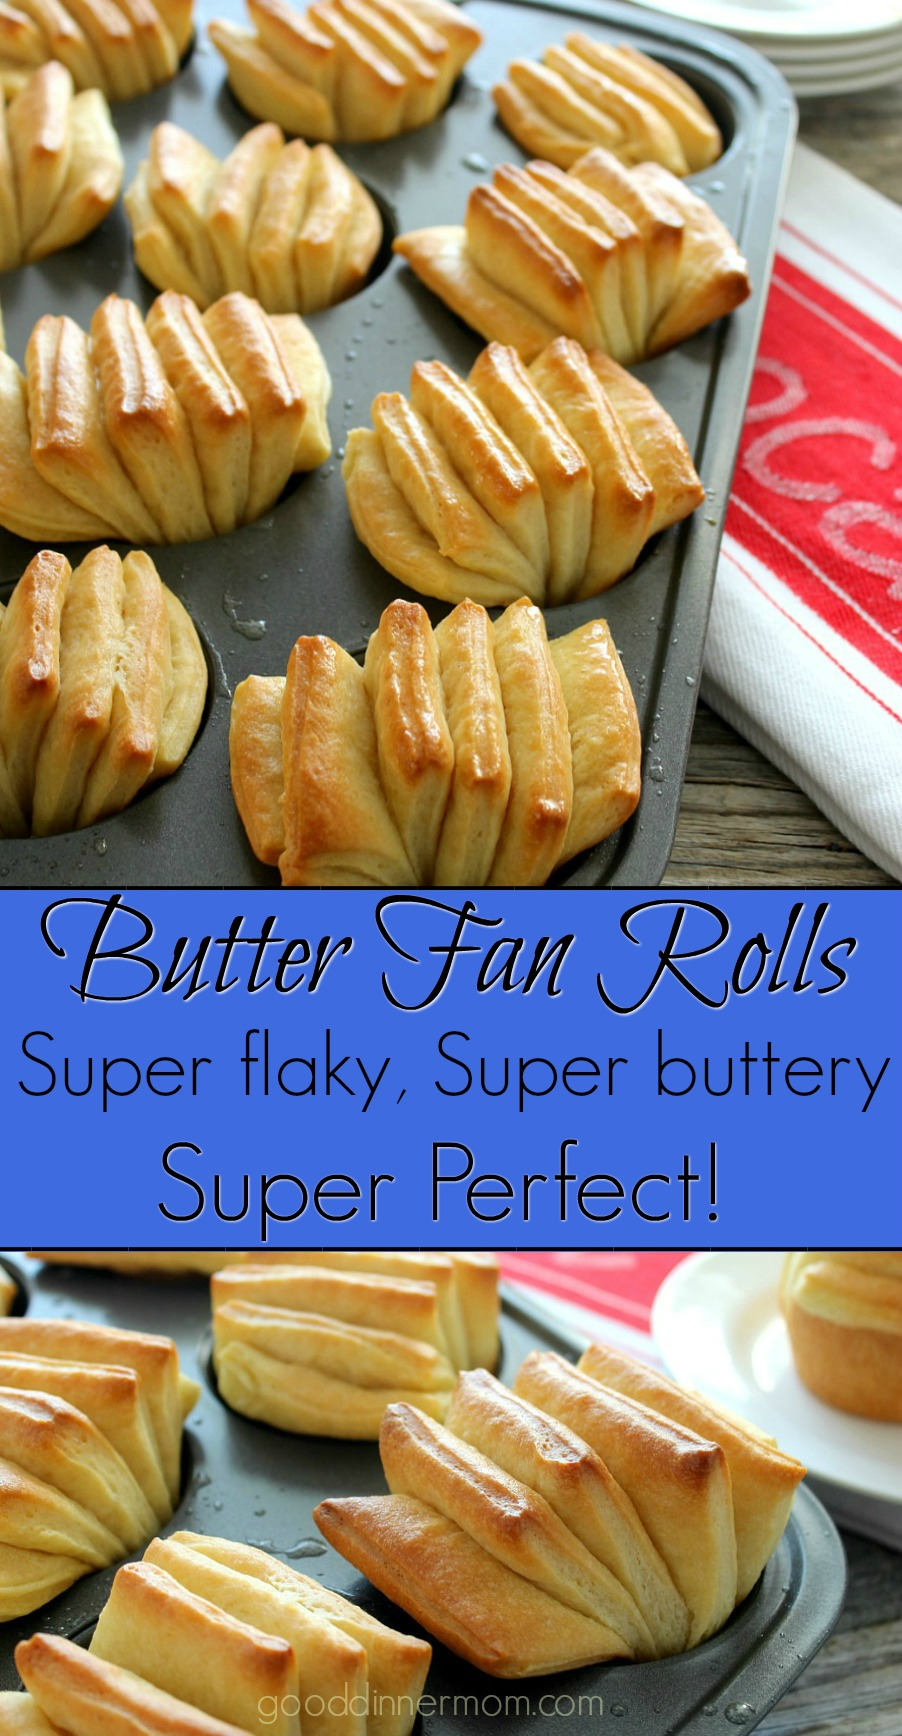 Butter Fan Rolls are easy to make with these step by step instructions and illustrations. Flaky, buttery, and tender. And beautiful.